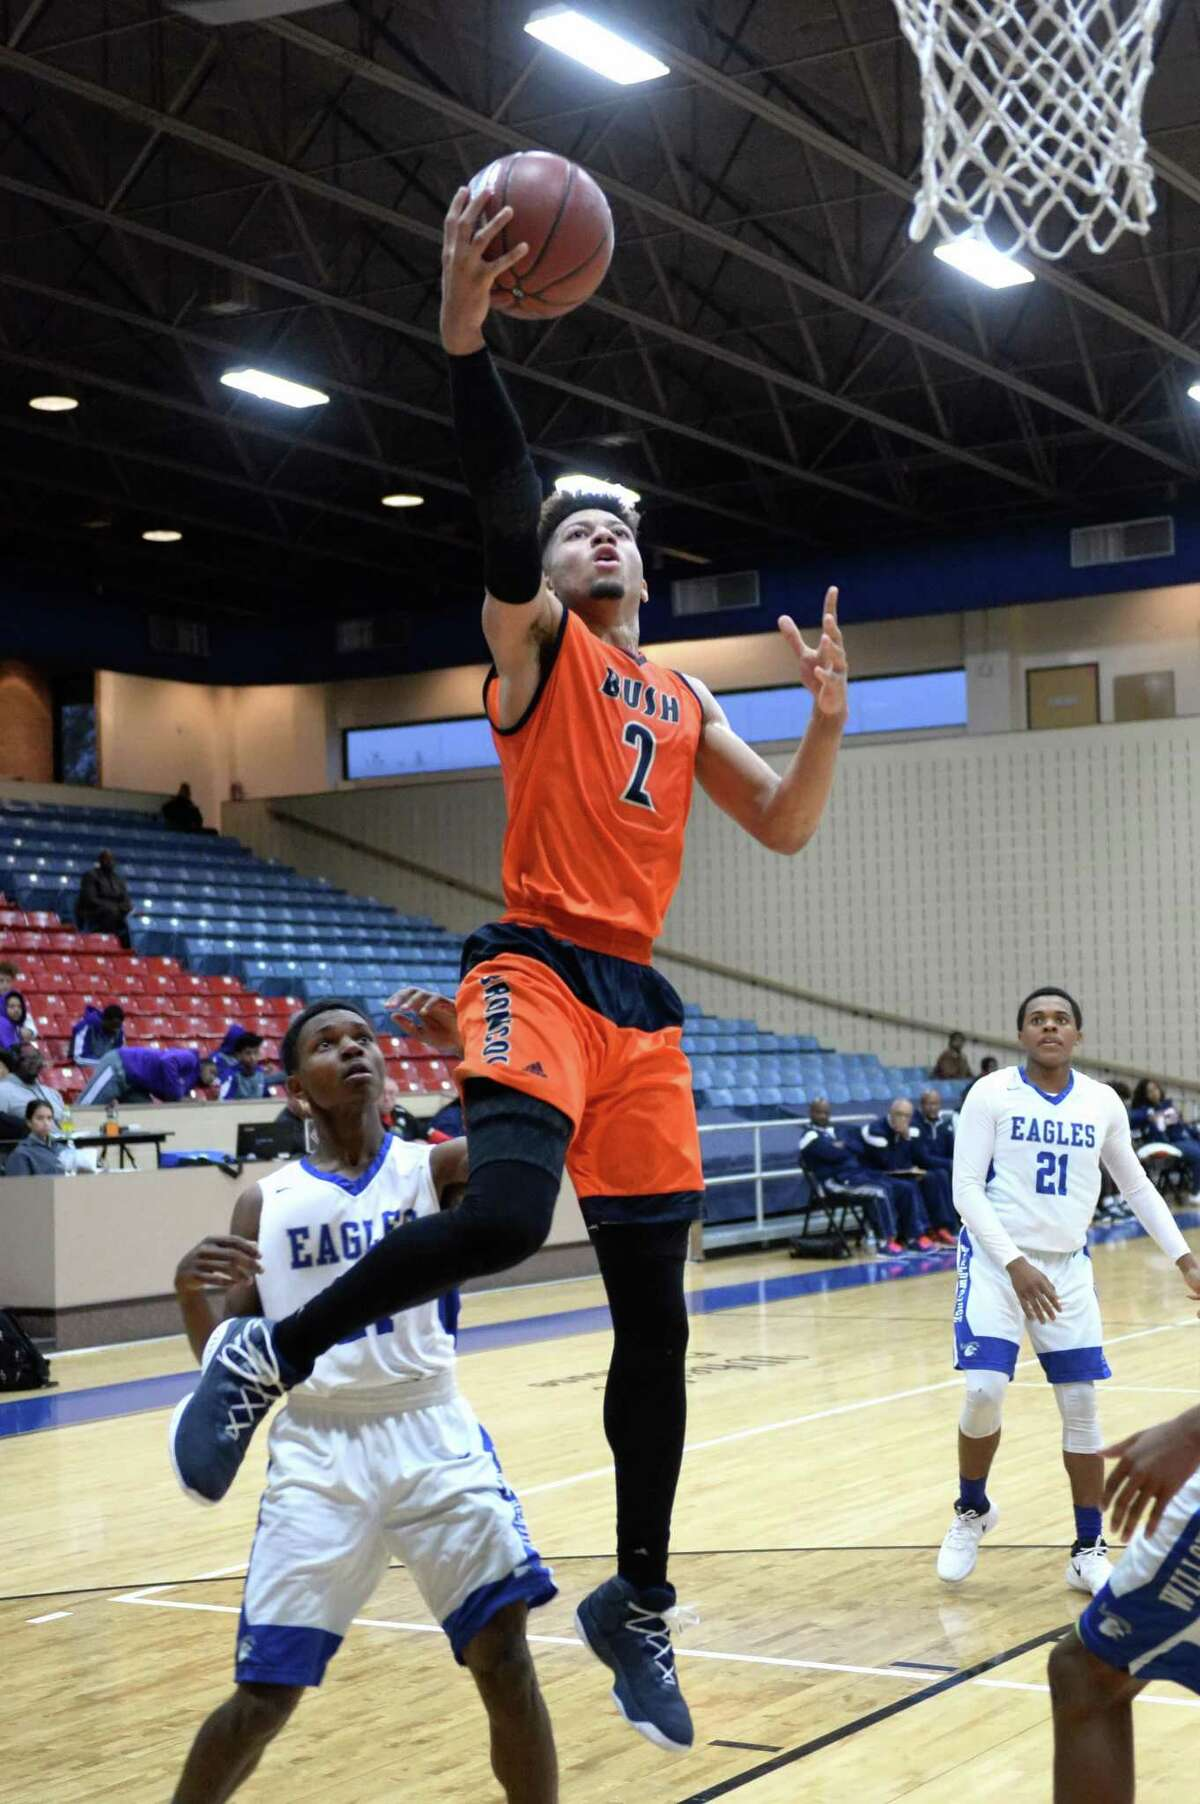 Kyle Slater (2) of Bush drives to the hoop during pool play in the Fort Bend ISD Balfour Basketball Tournament between the Bush Broncos and the Willowridge Eagles on Thursday December 7, 2017 at Wheeler Field House, Sugar Land, TX